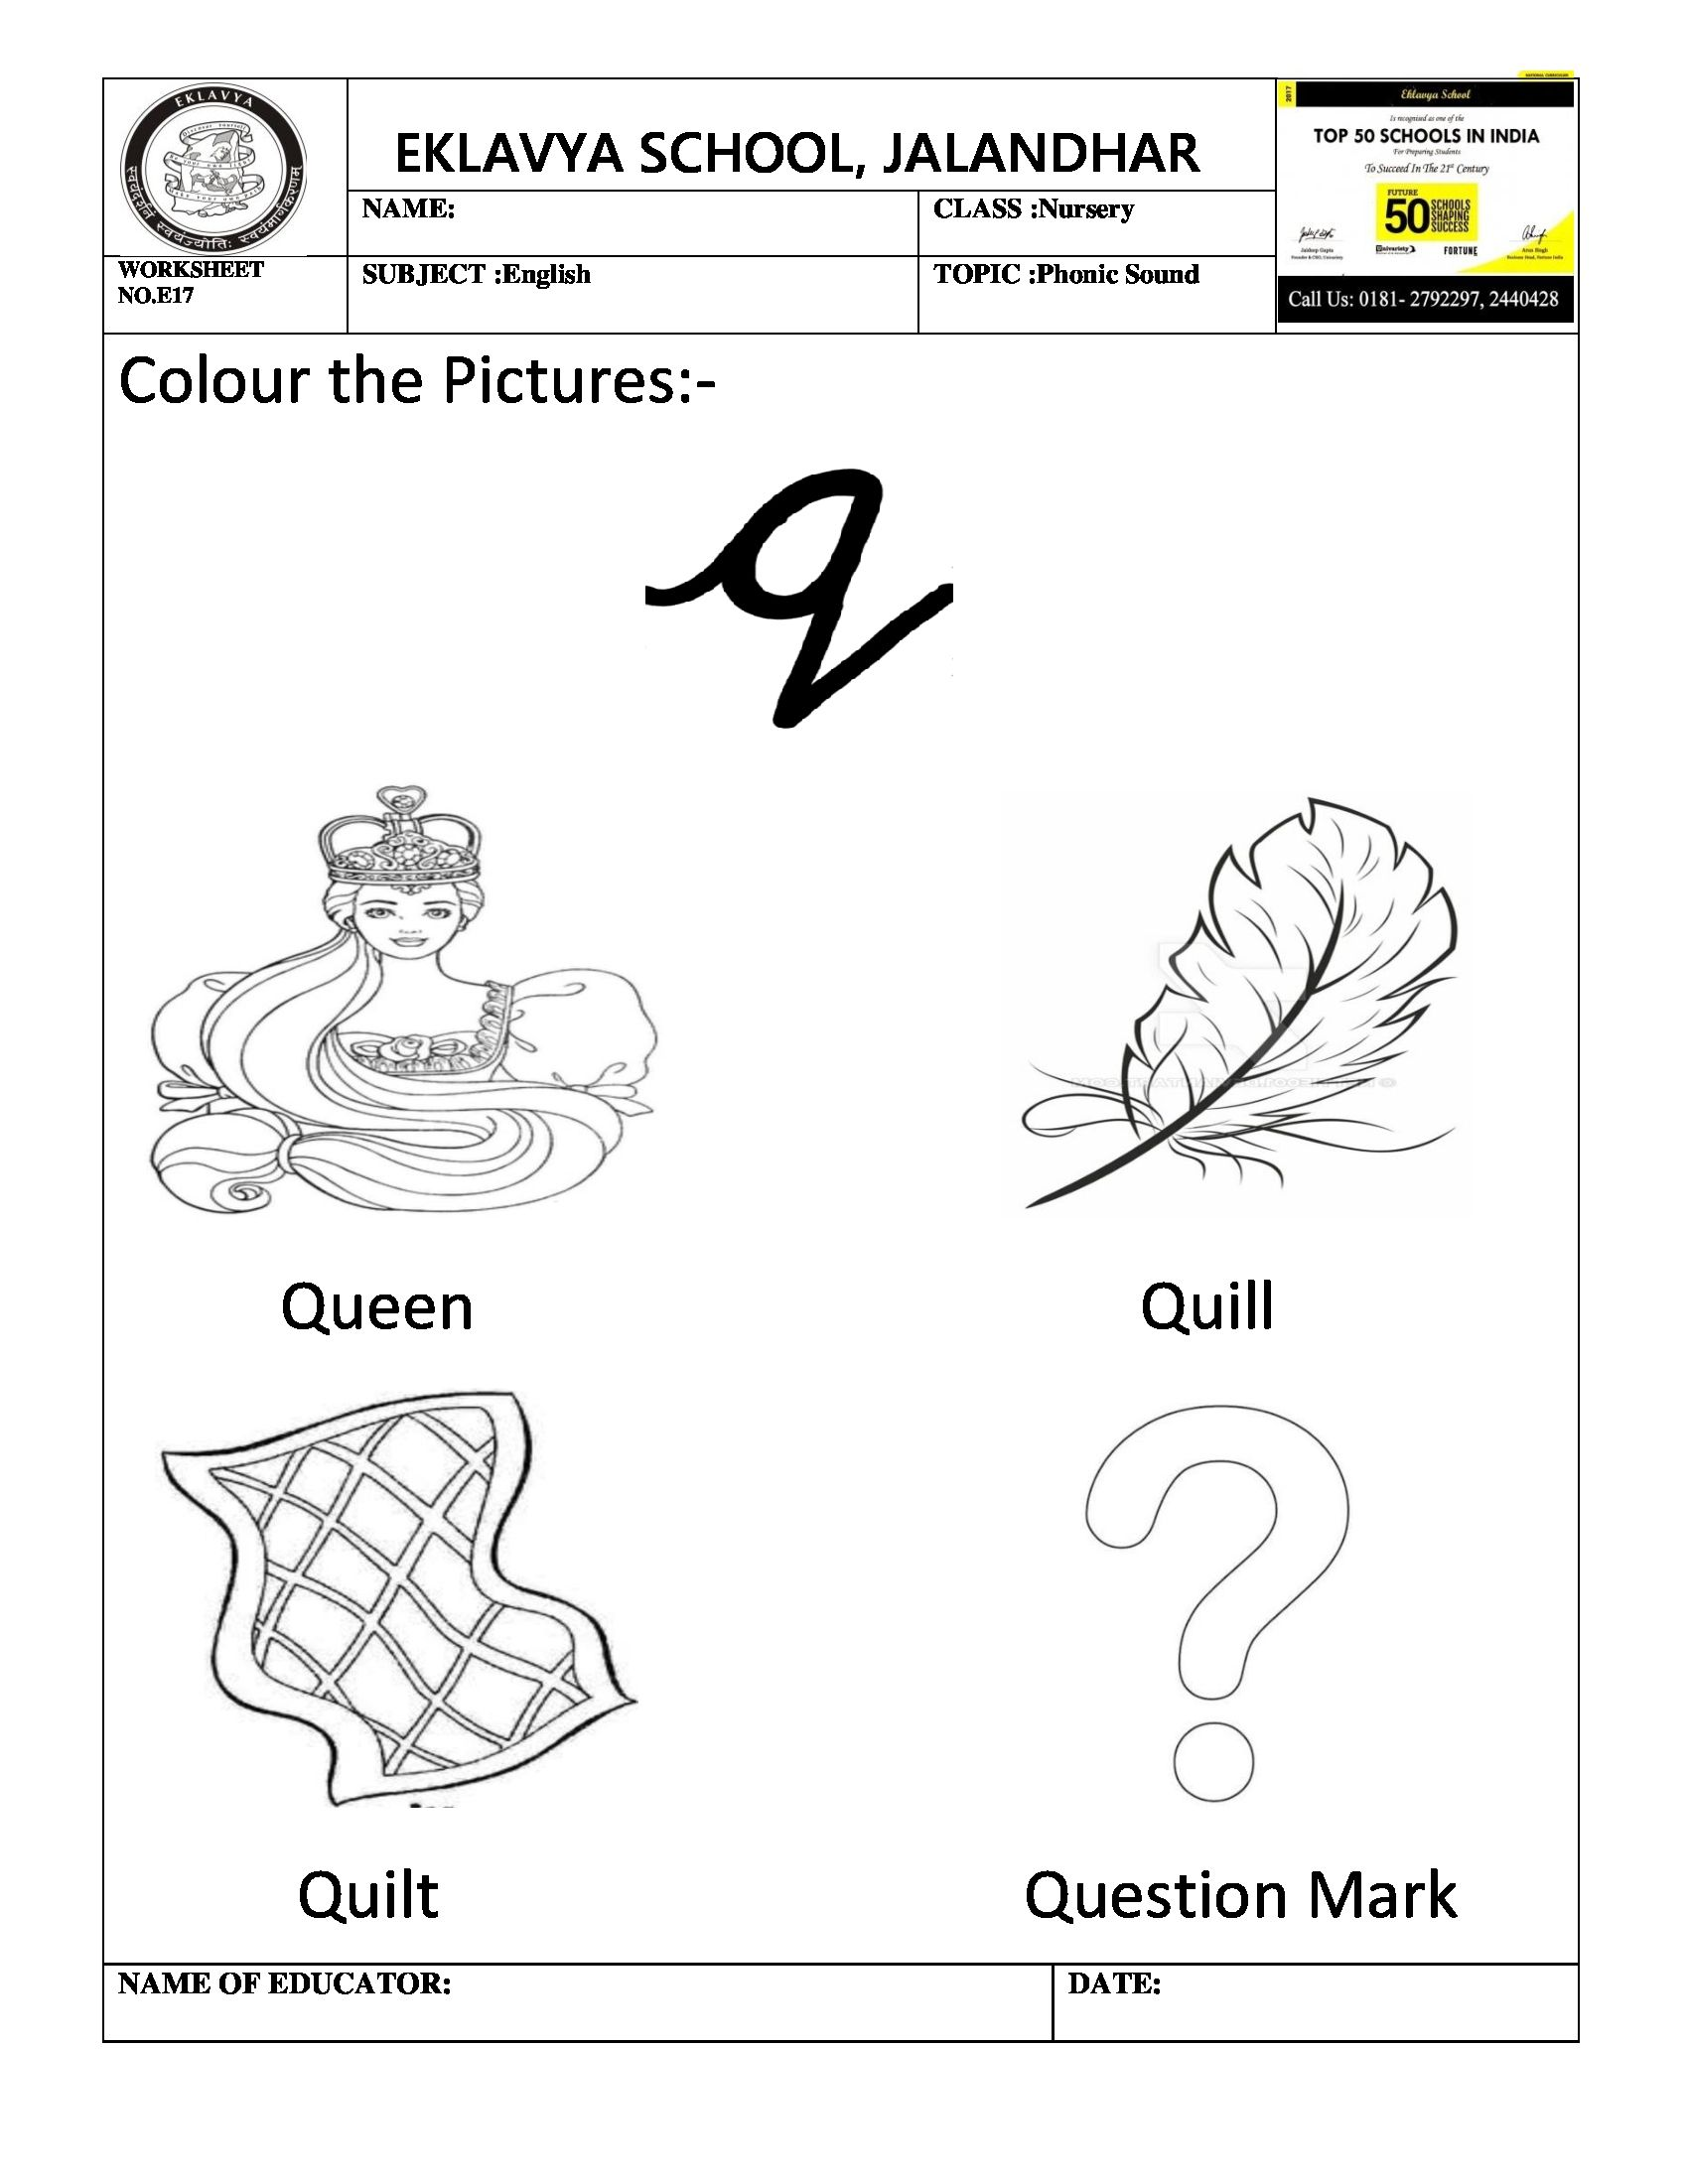 Worksheet On Phonic Sound Q With Images